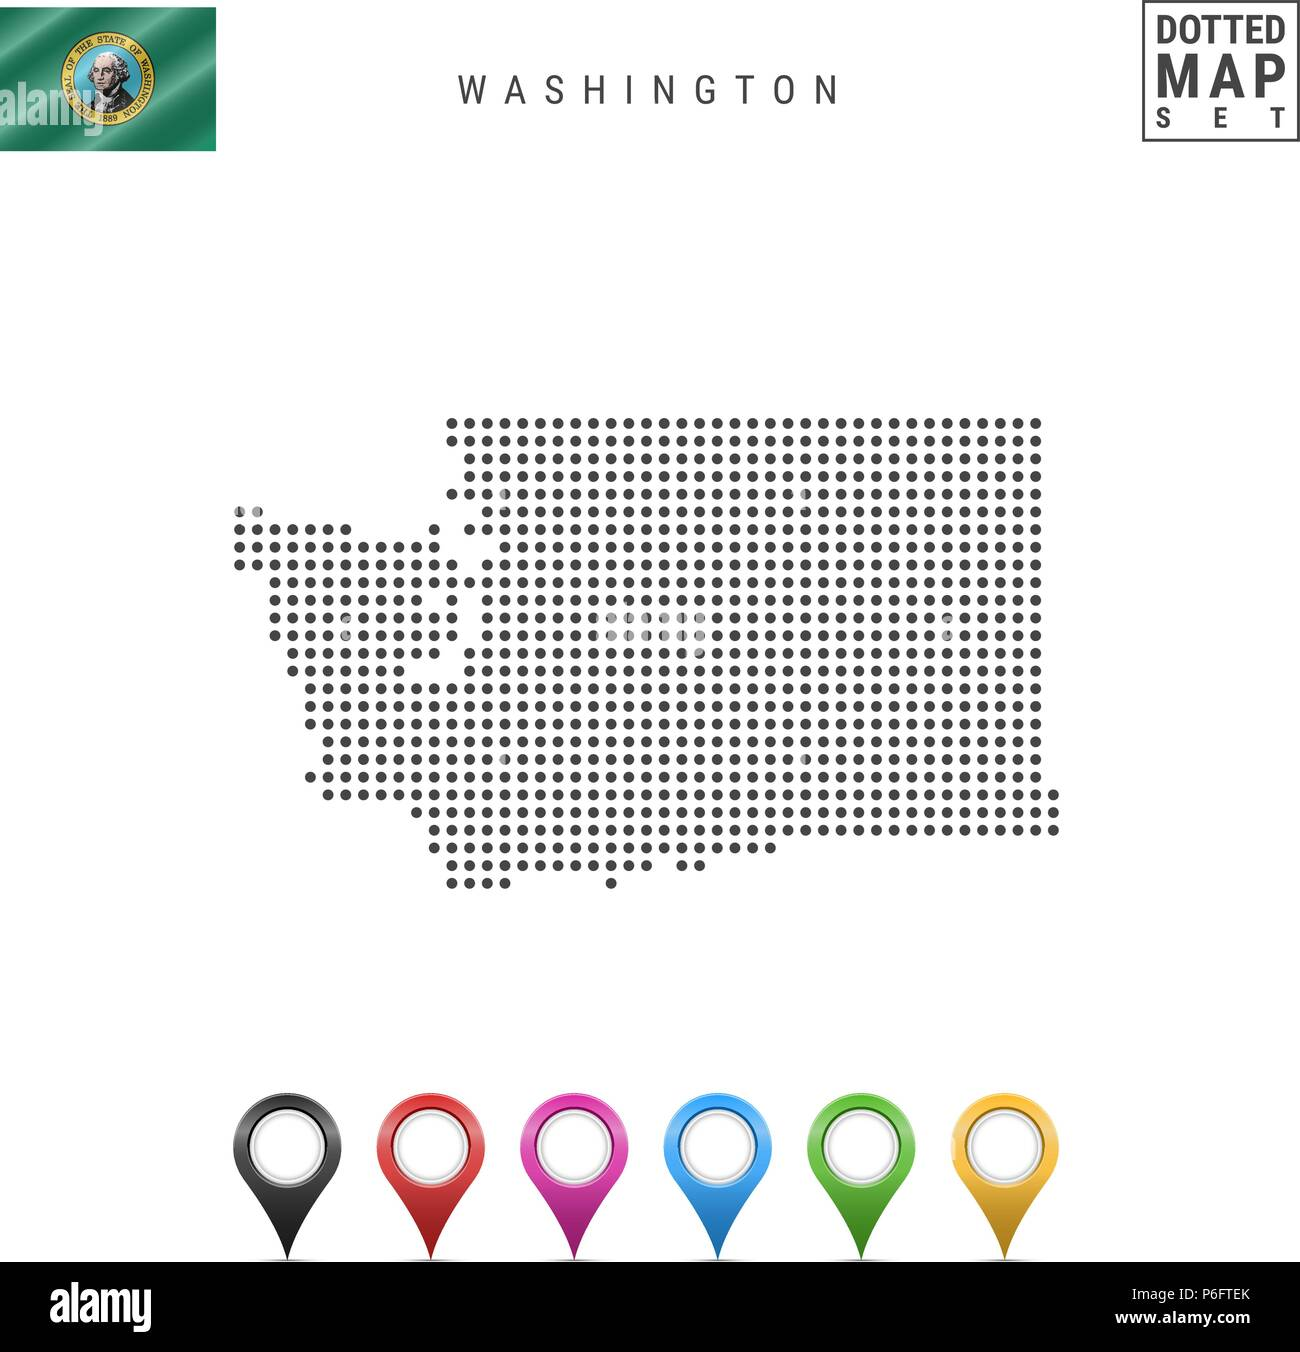 Dots Pattern Vector Map of Washington. Stylized Silhouette of Washington. Flag of Washington. Multicolored Map Markers - Stock Vector